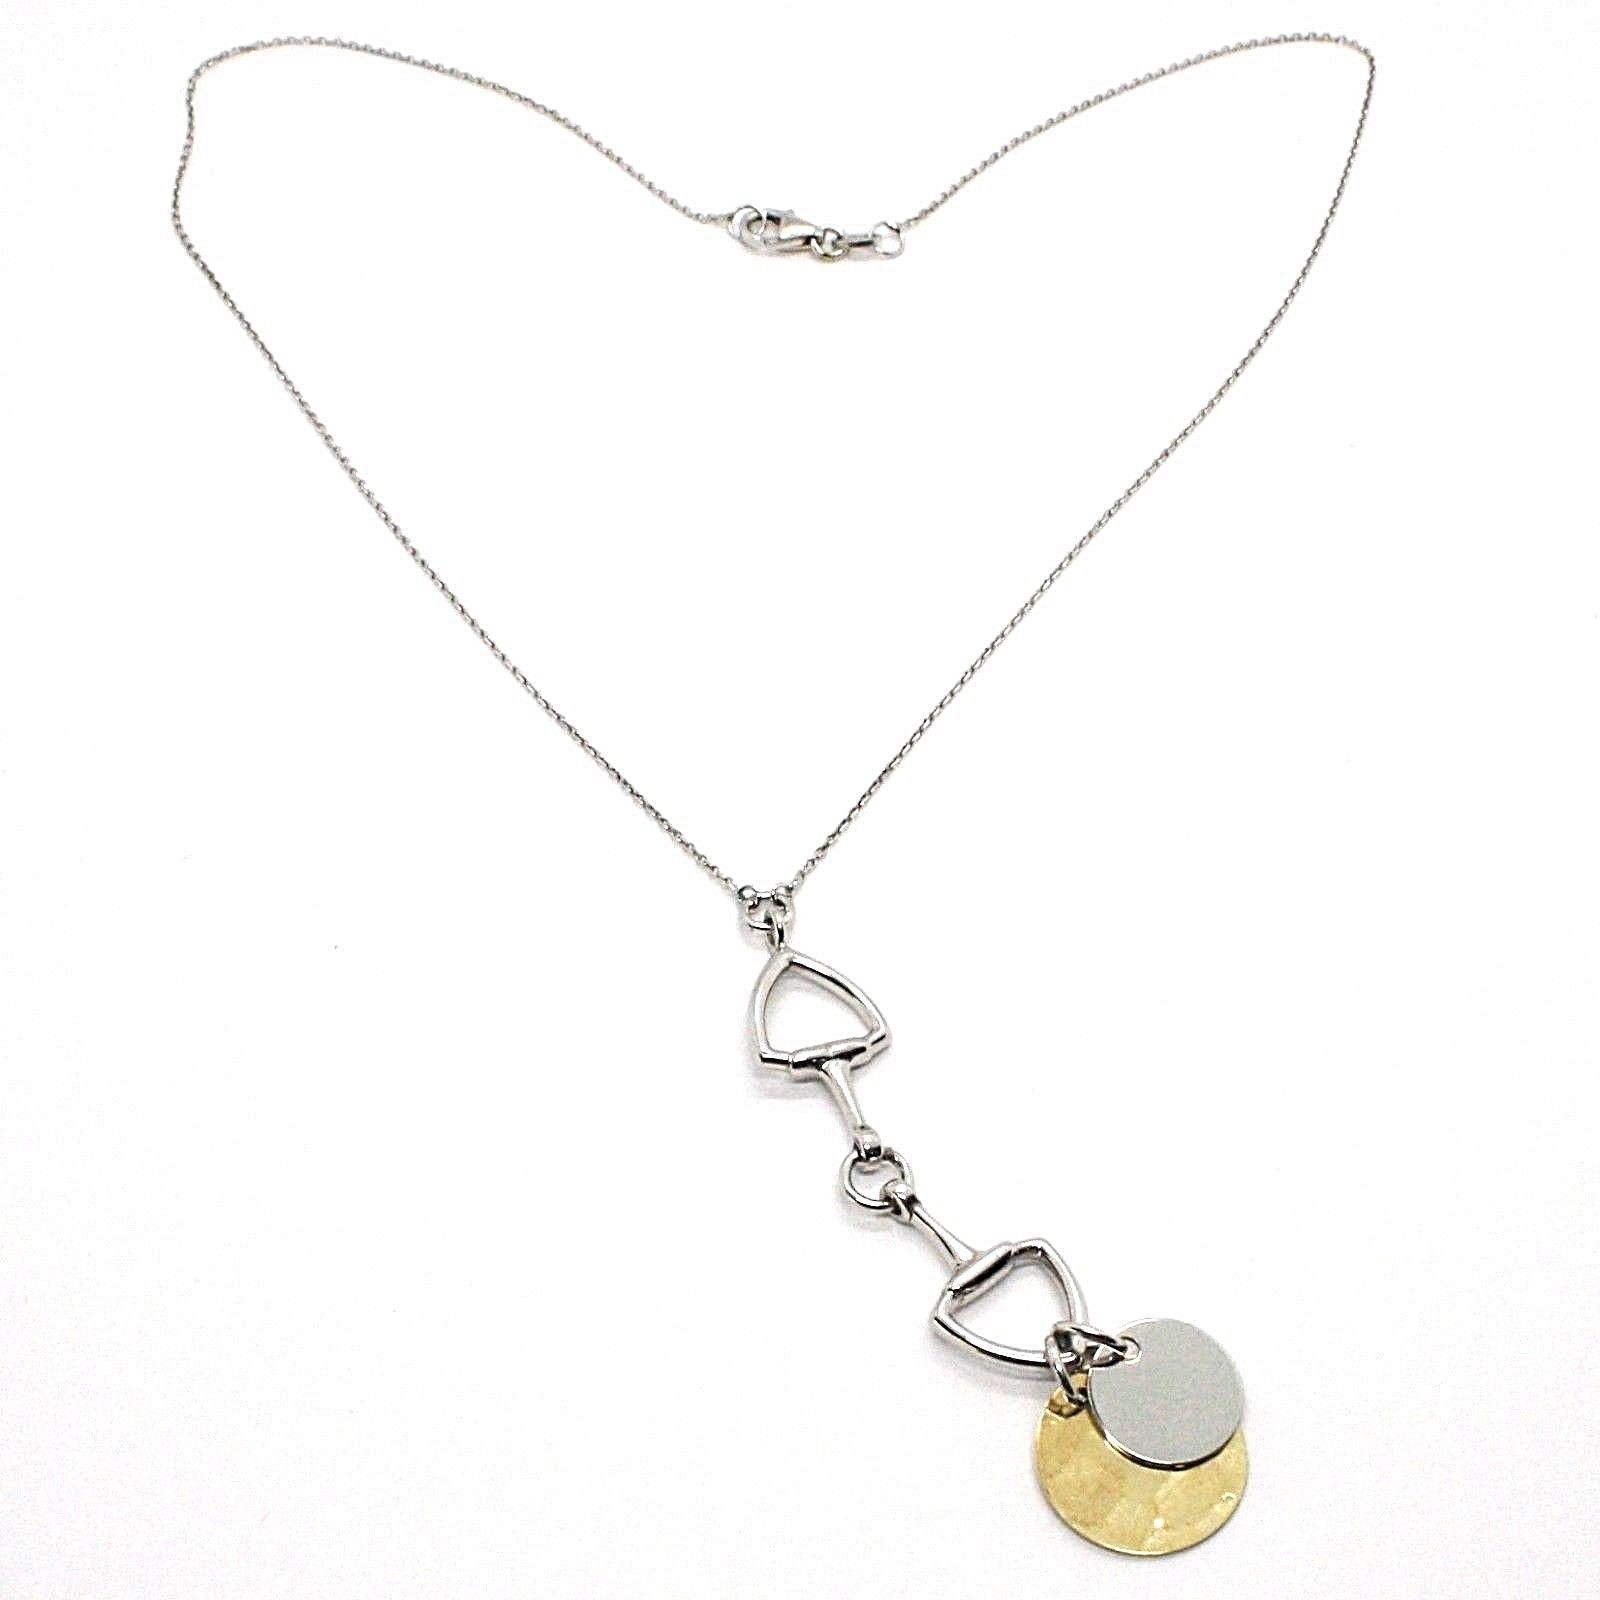 SILVER 925 NECKLACE, CHAIN OVAL, DOUBLE DISCO PENDANT, SHINY AND POUNDED